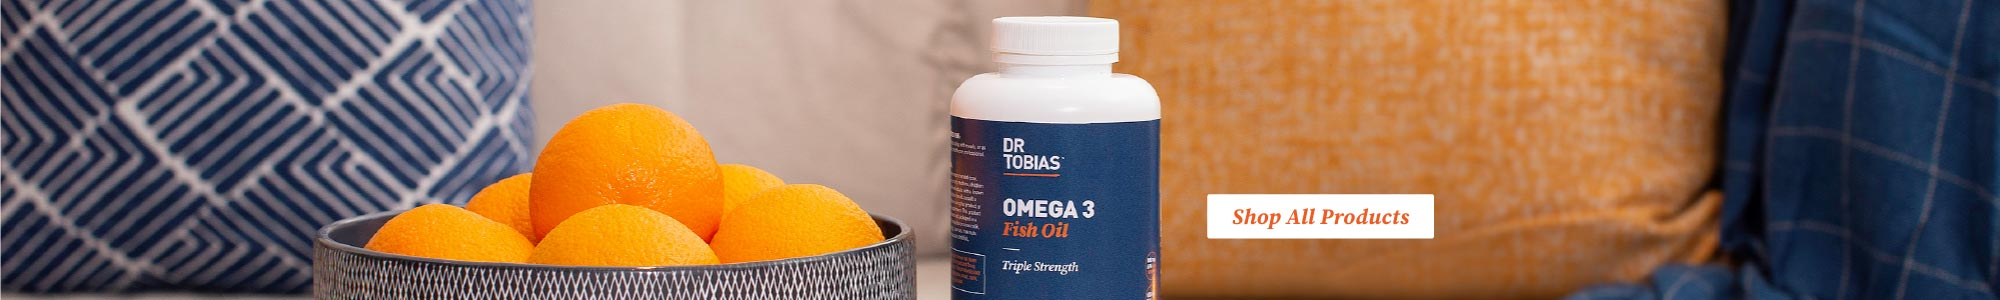 Omega 3 Fish oil by Dr Tobias.  Shop all items online at eVitamins.